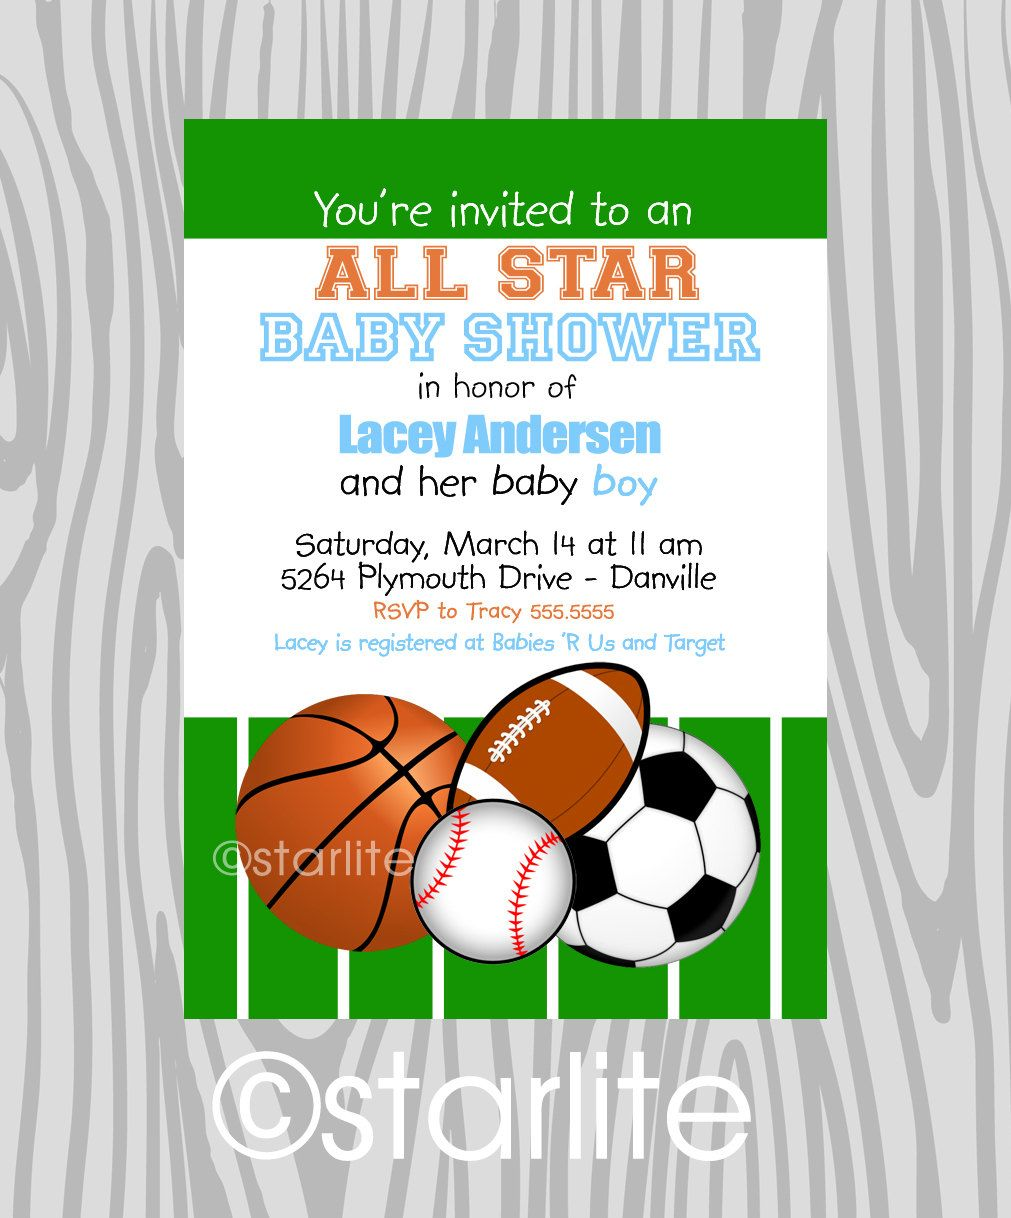 Cute invites for a boy baby shower sports theme future dreams cute invites for a boy baby shower sports theme filmwisefo Images